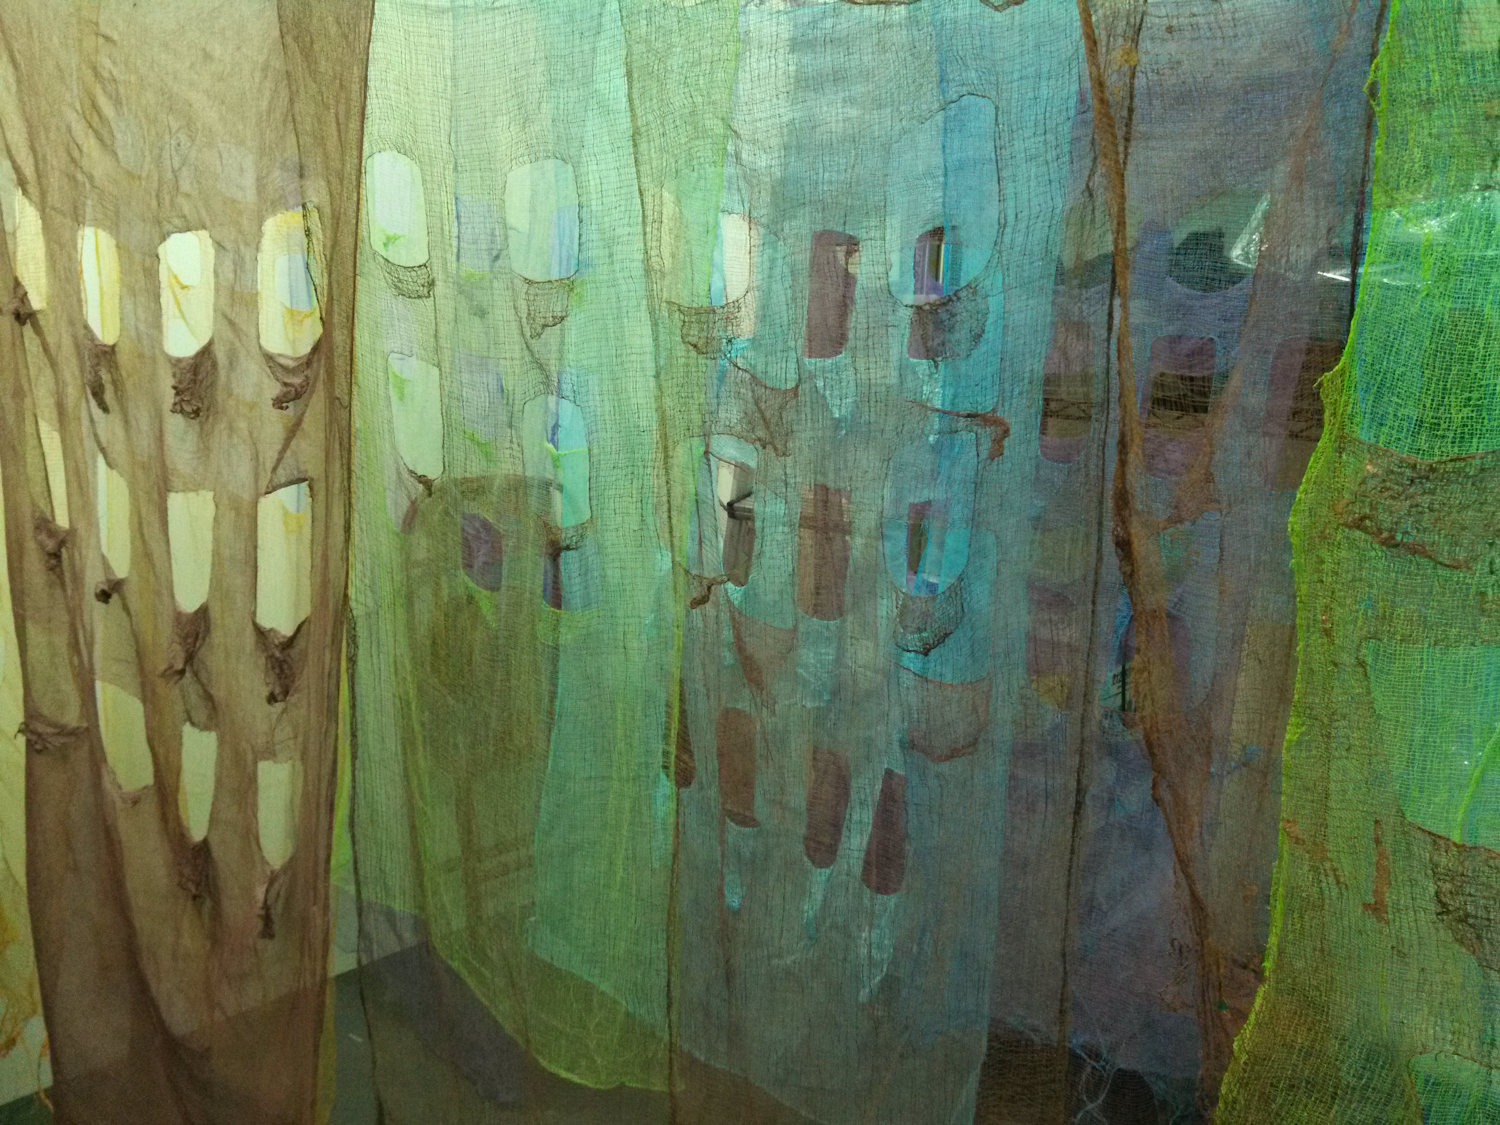 So where do you live? [installation from the Fragile City series]Dyed cheesecloth, monofilamentPriscilla Stadler 2014